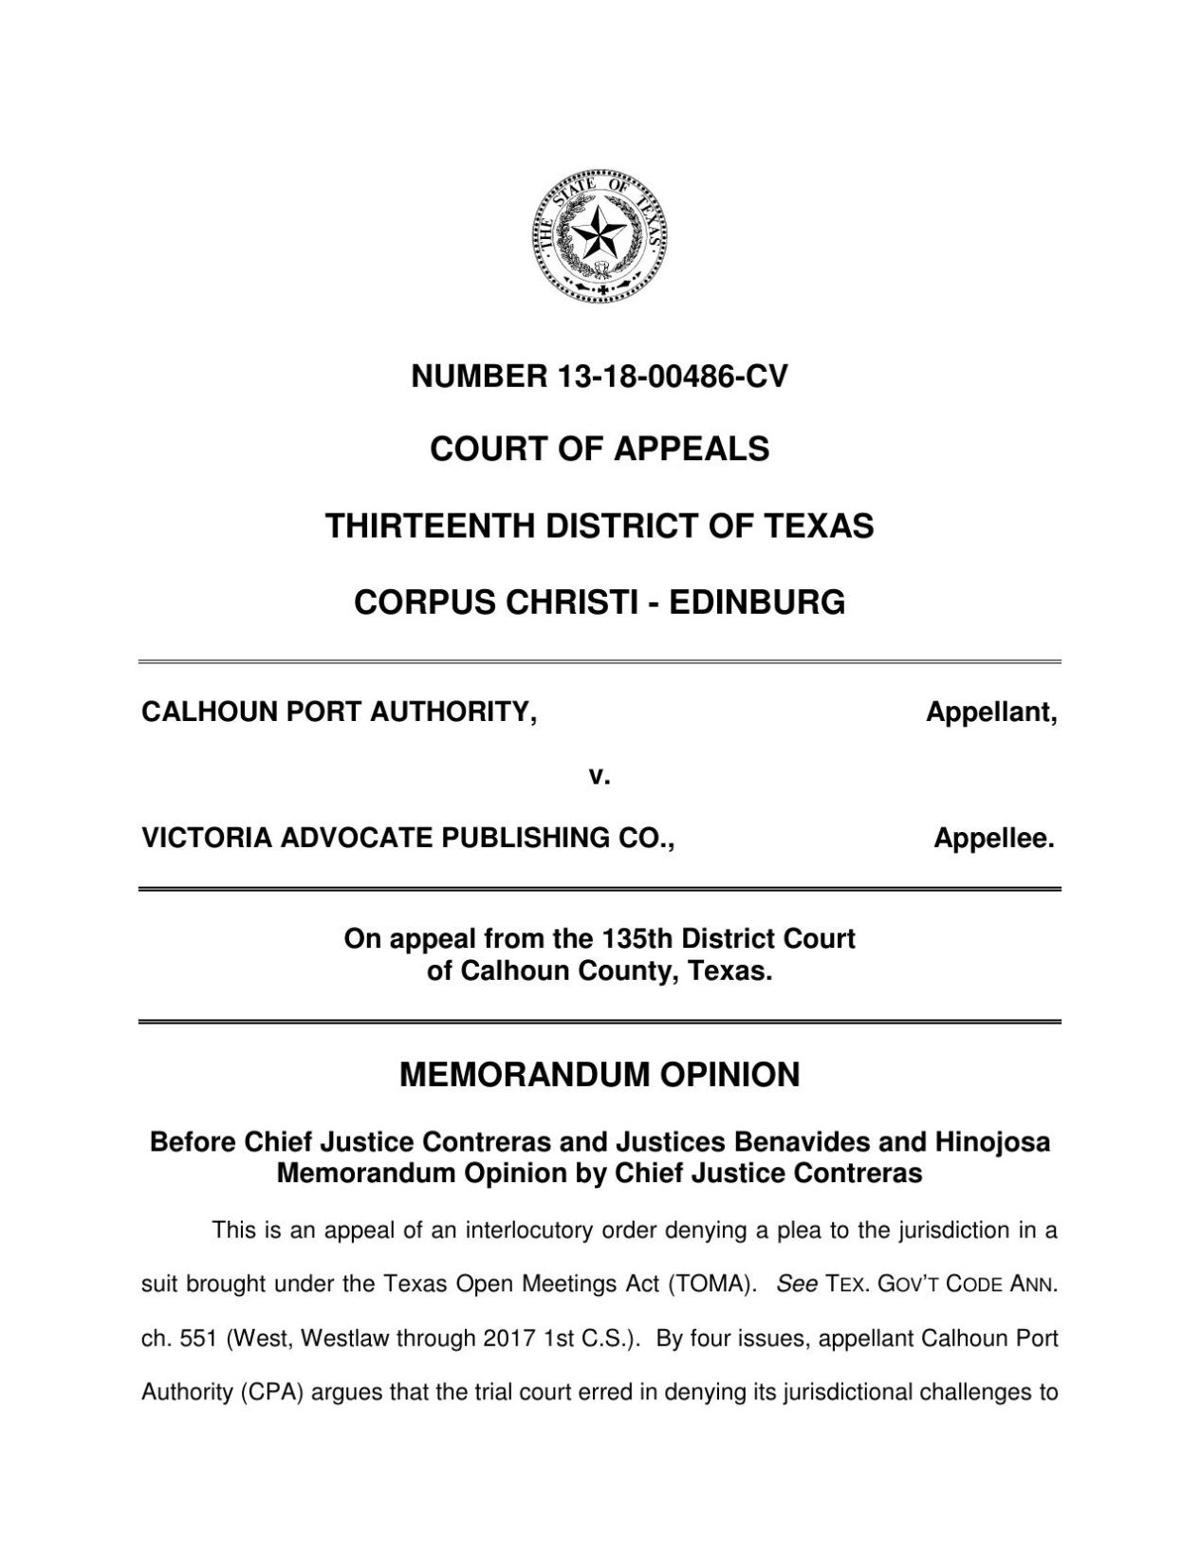 Opinion explaining 13th Court of Appeals' decision to dismiss port lawsuit